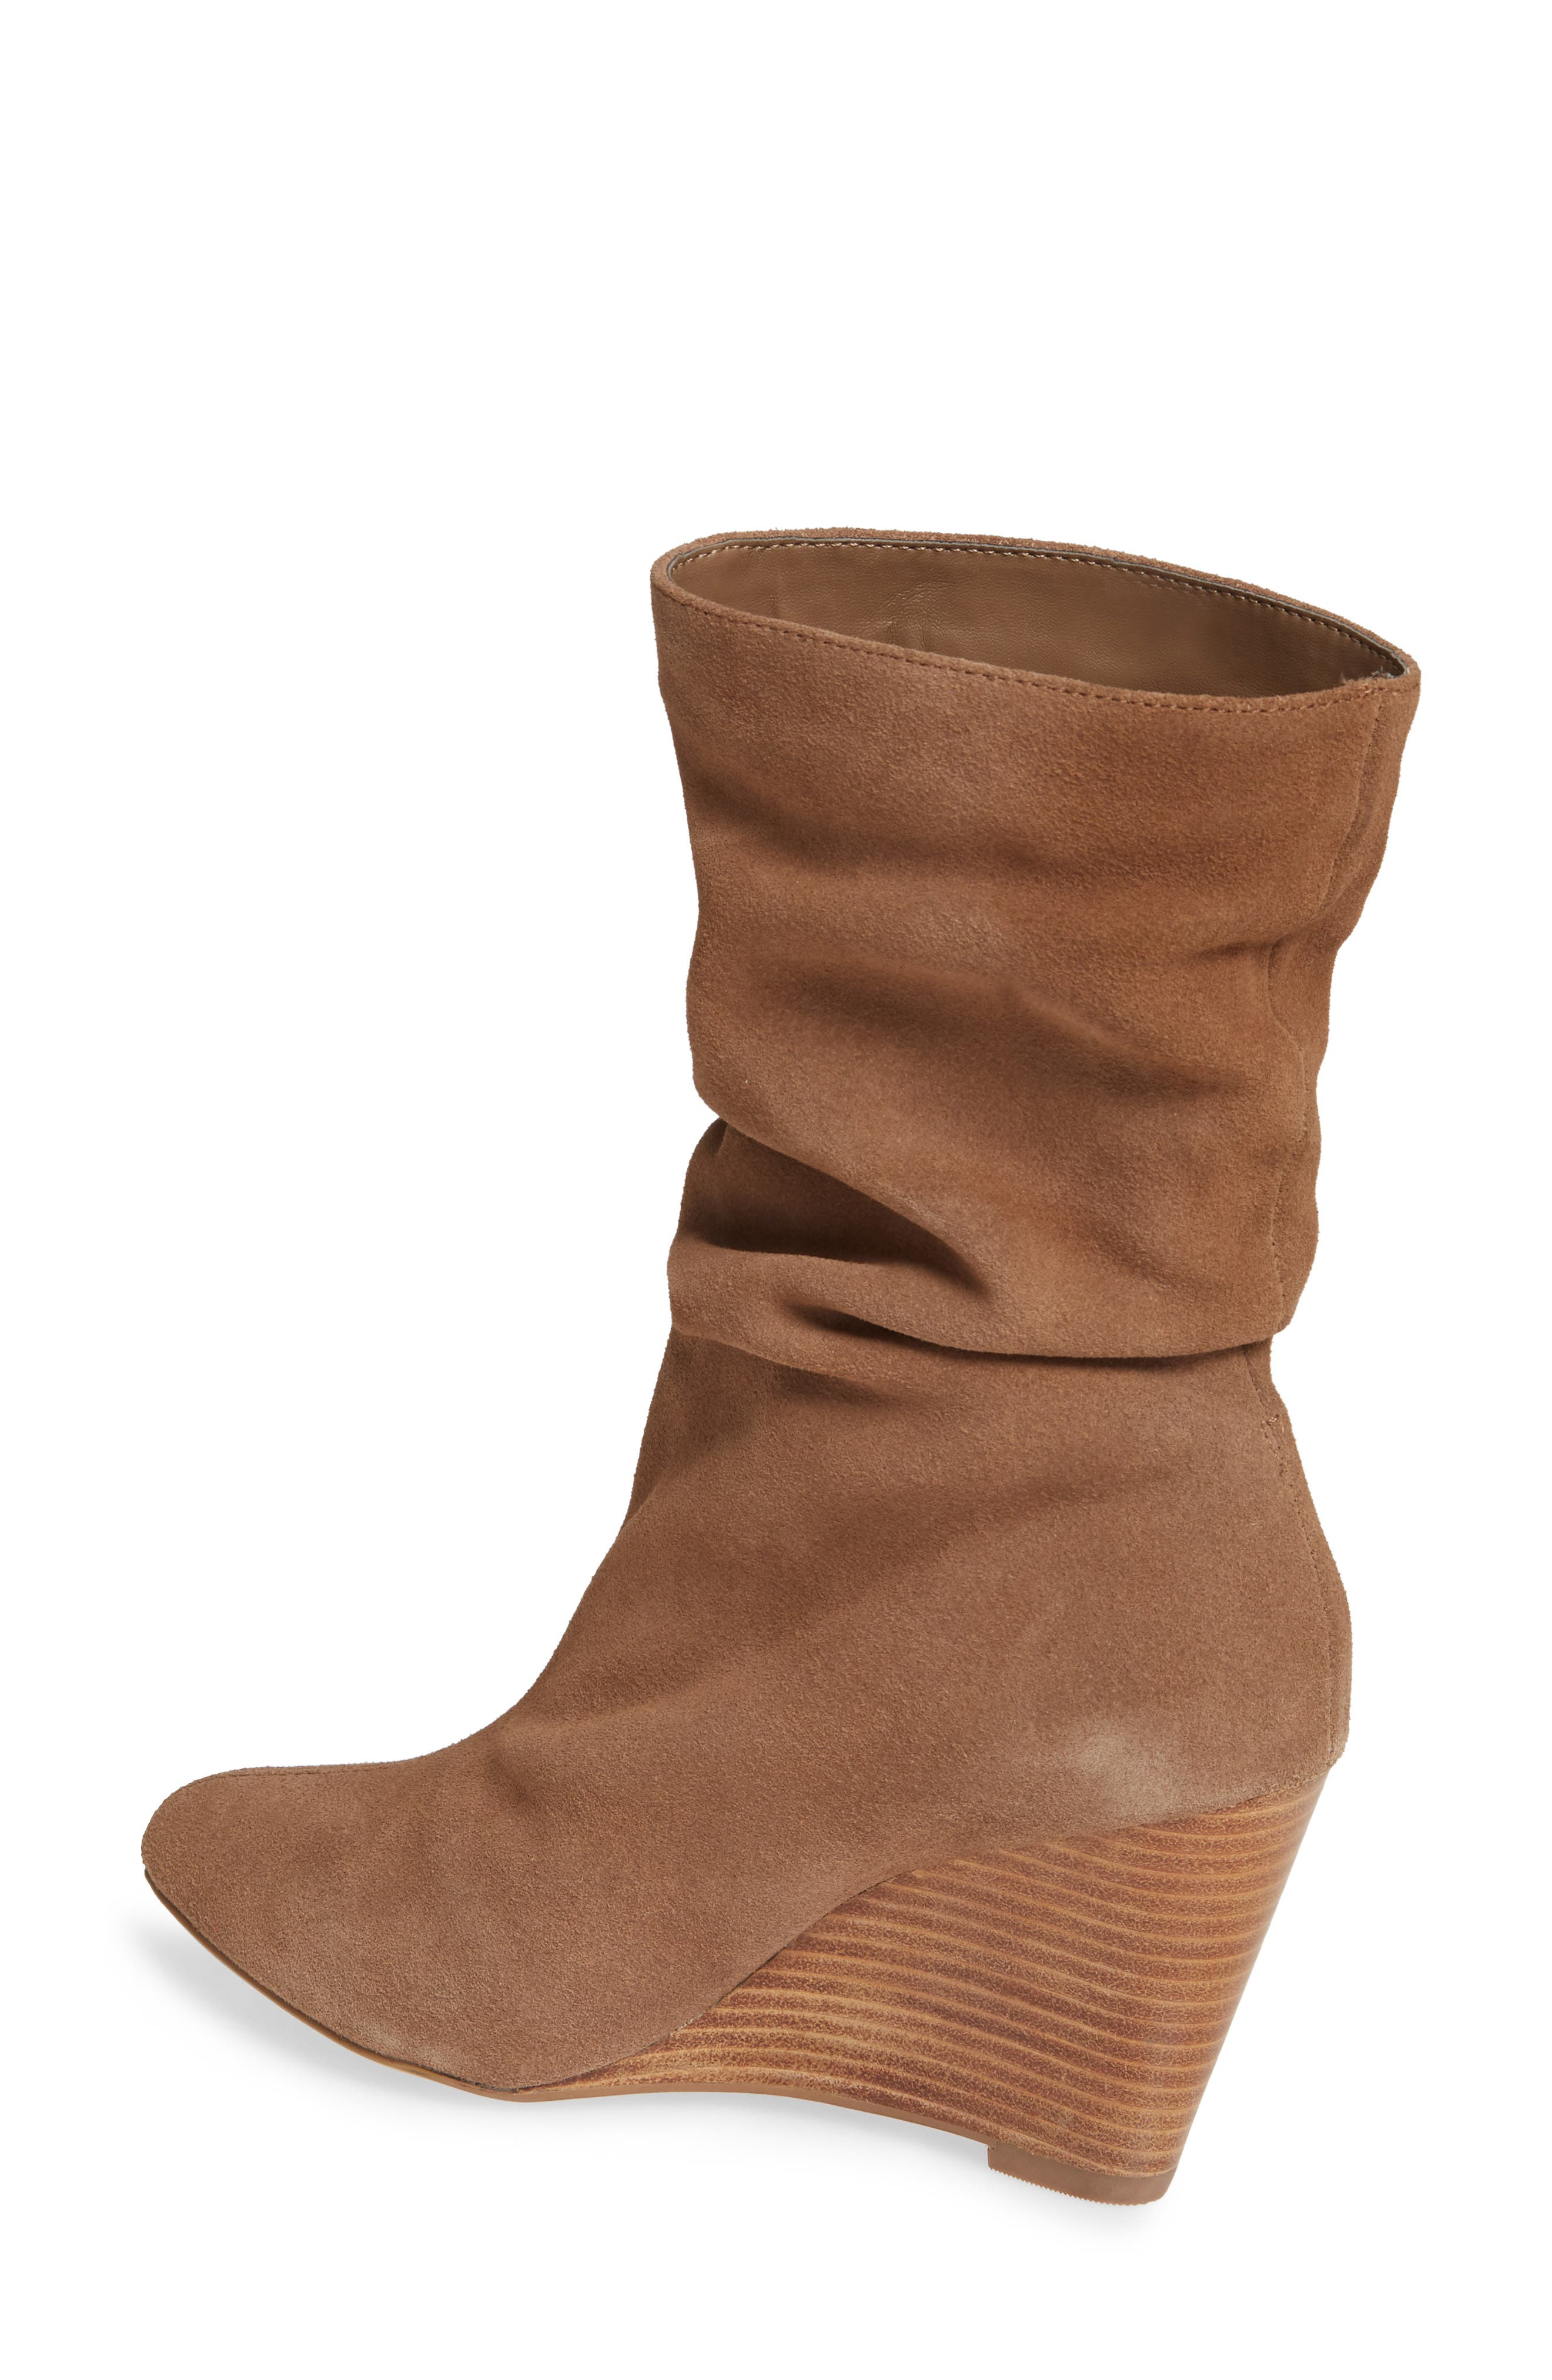 CHARLES BY CHARLES DAVID, Edell Slouchy Wedge Boot, Alternate thumbnail 2, color, TAUPE SUEDE